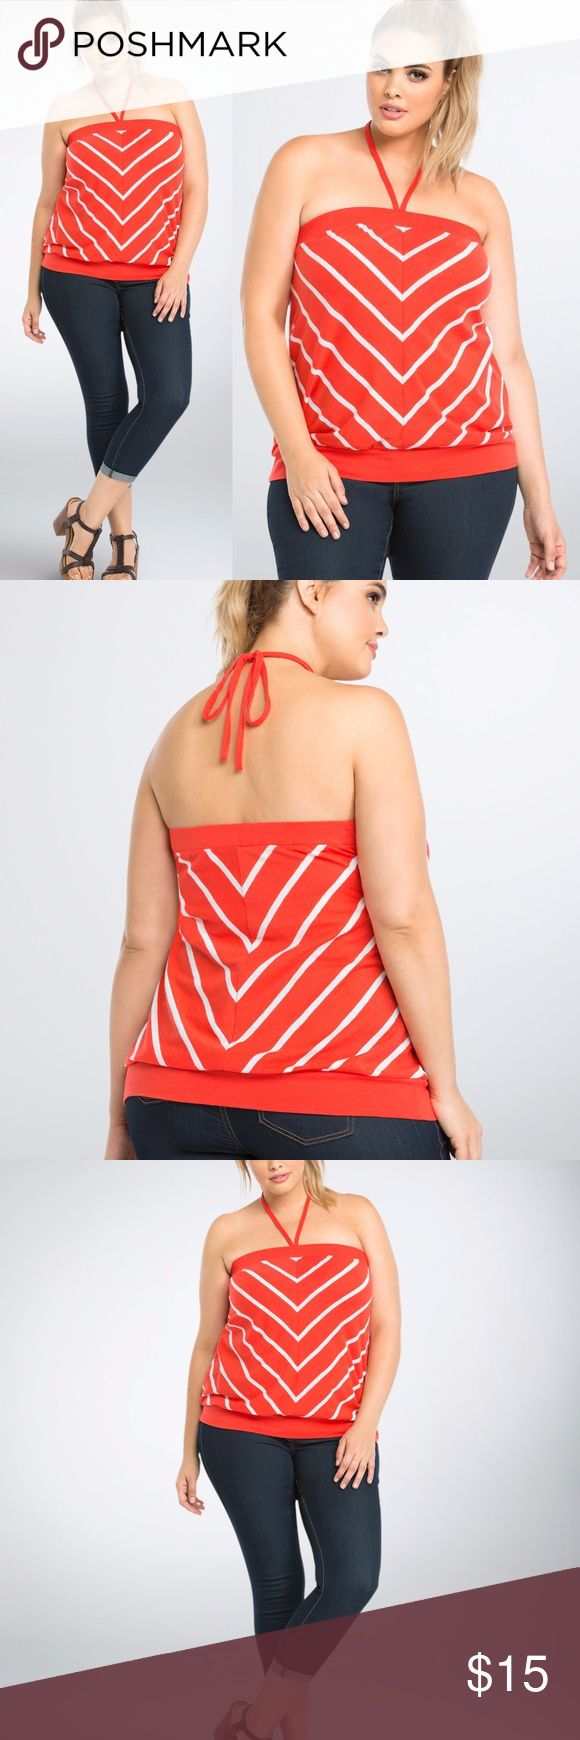 """New TORRID Red/White Striped Halter Tube Top NWT Striped Tube Top  It's a cruel summer; don't be left on your own without a tube top! Cut with a breezy red knit and lined with eye-catching white stripes, the style can be tied into a makeshift halter; either way, your shoulders will stay sunkissed.   Model is 5'10"""", size 1 Size 1 measures 21 1/2' from center front Cotton Wash cold, dry low  Available in sizes: 00 (M/L 10) 